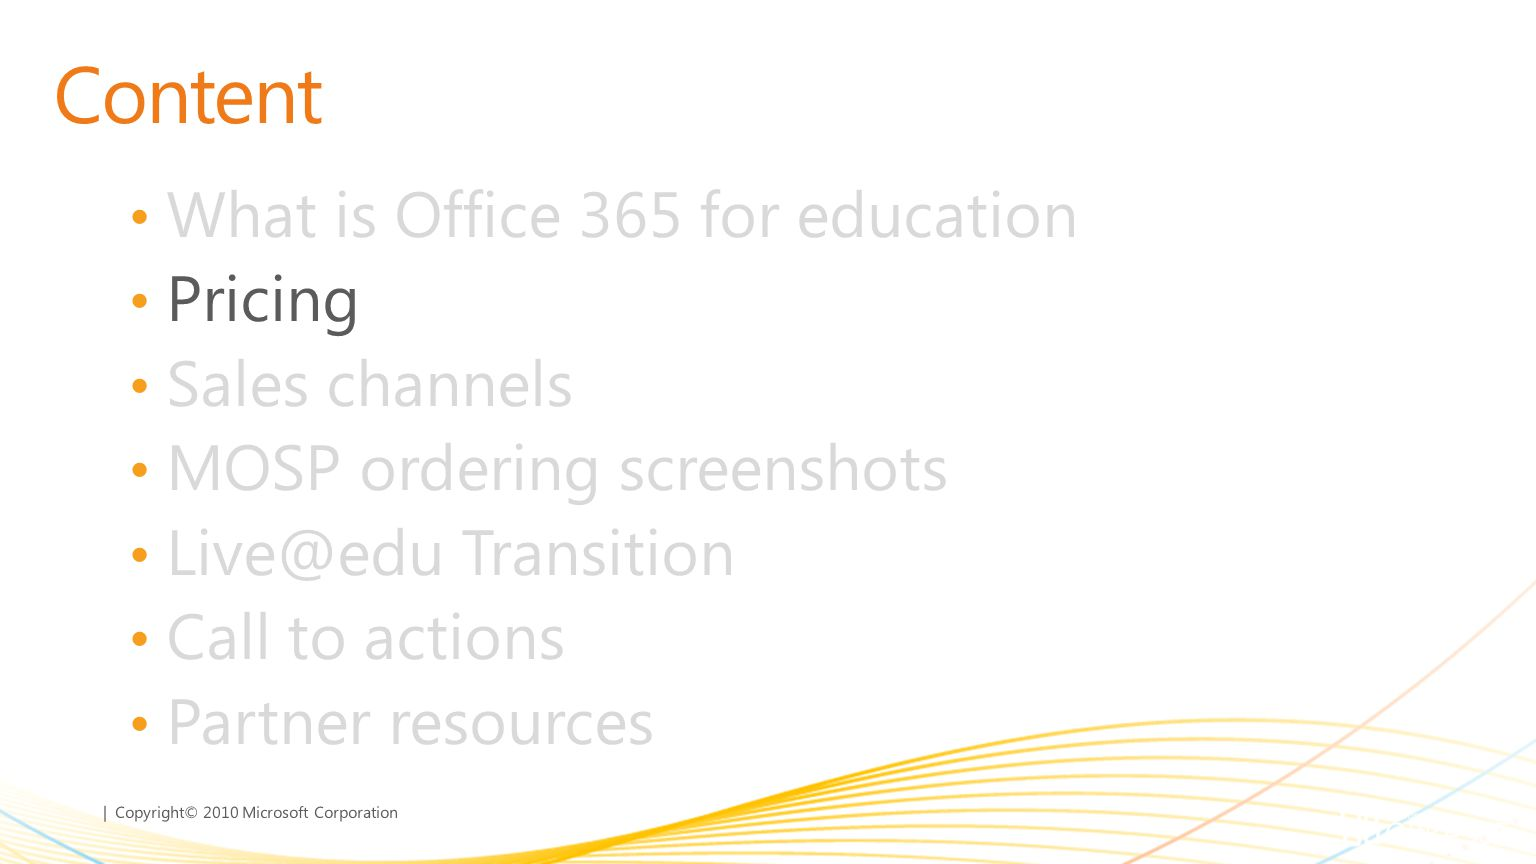 | Copyright© 2010 Microsoft Corporation Content What is Office 365 for education Pricing Sales channels MOSP ordering screenshots Live@edu Transition Call to actions Partner resources